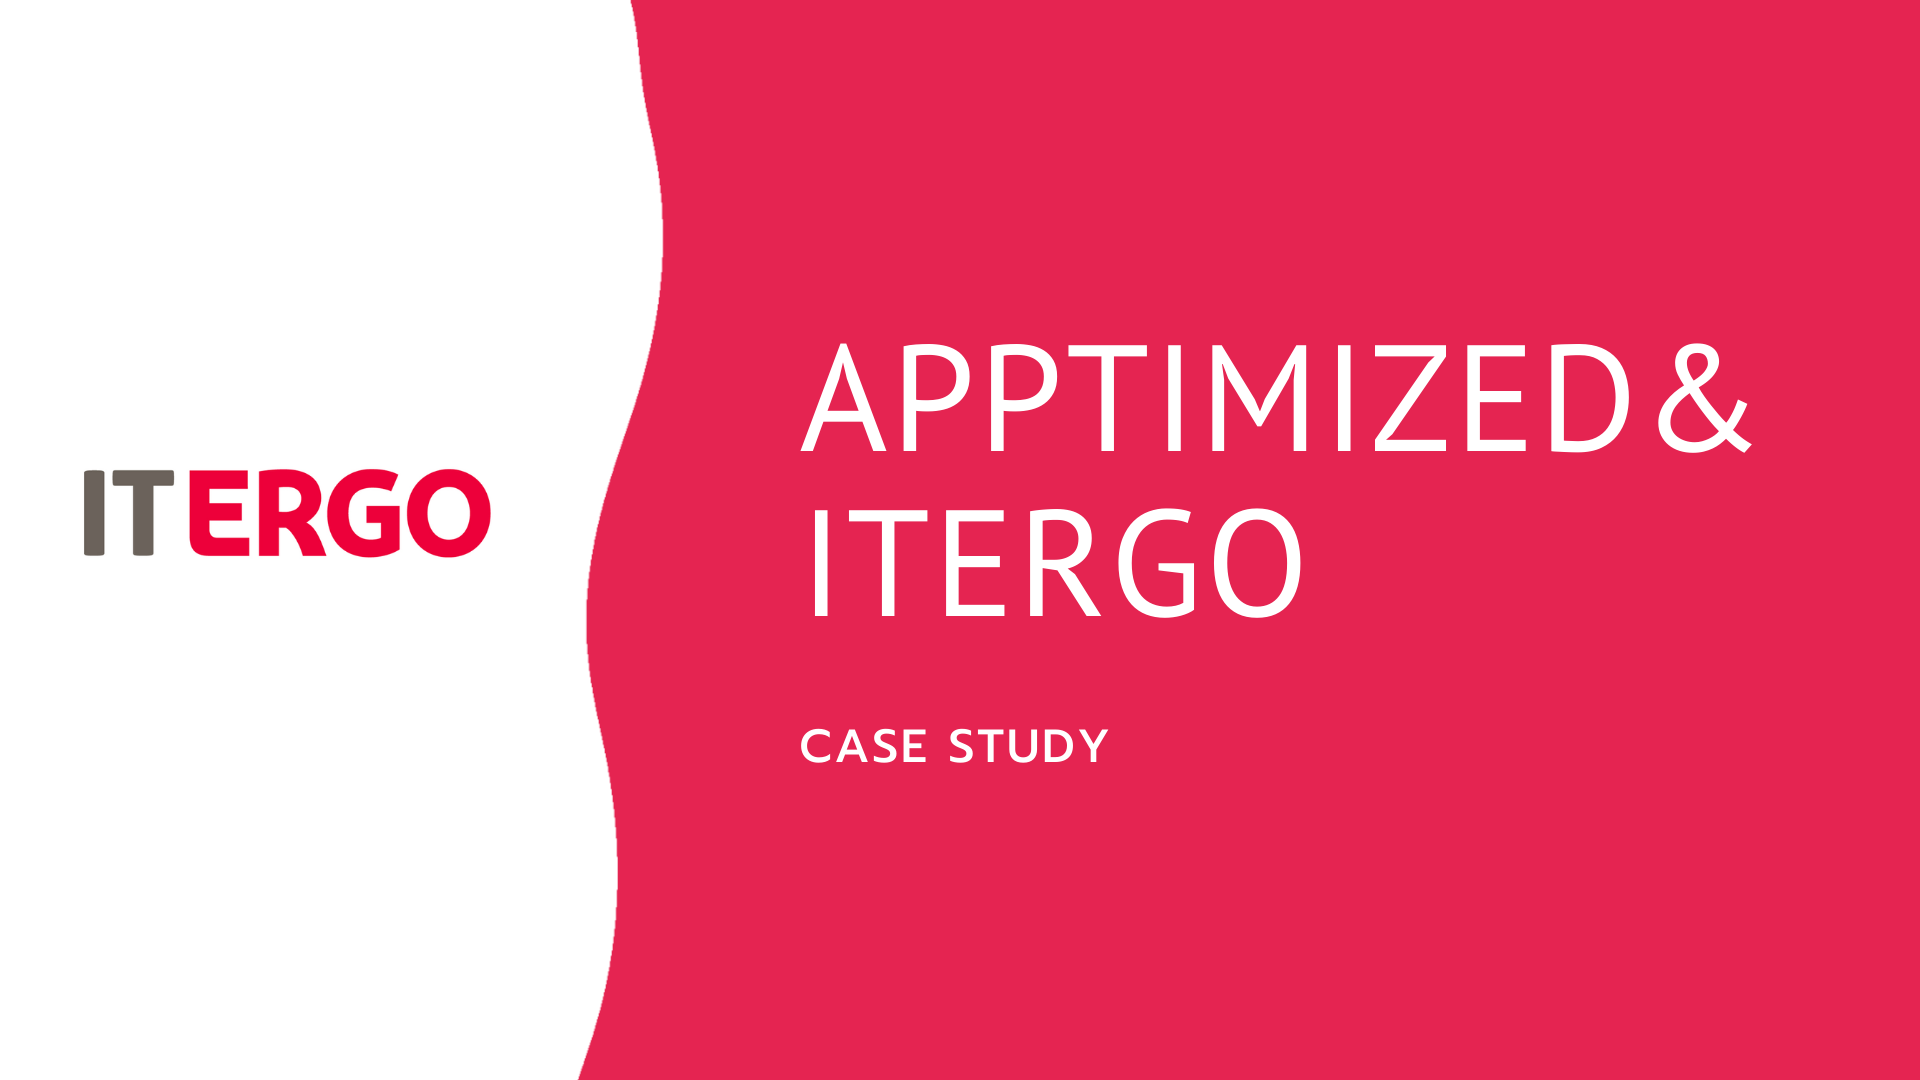 Customer Itergo Study Case for outsourcing of software packaging